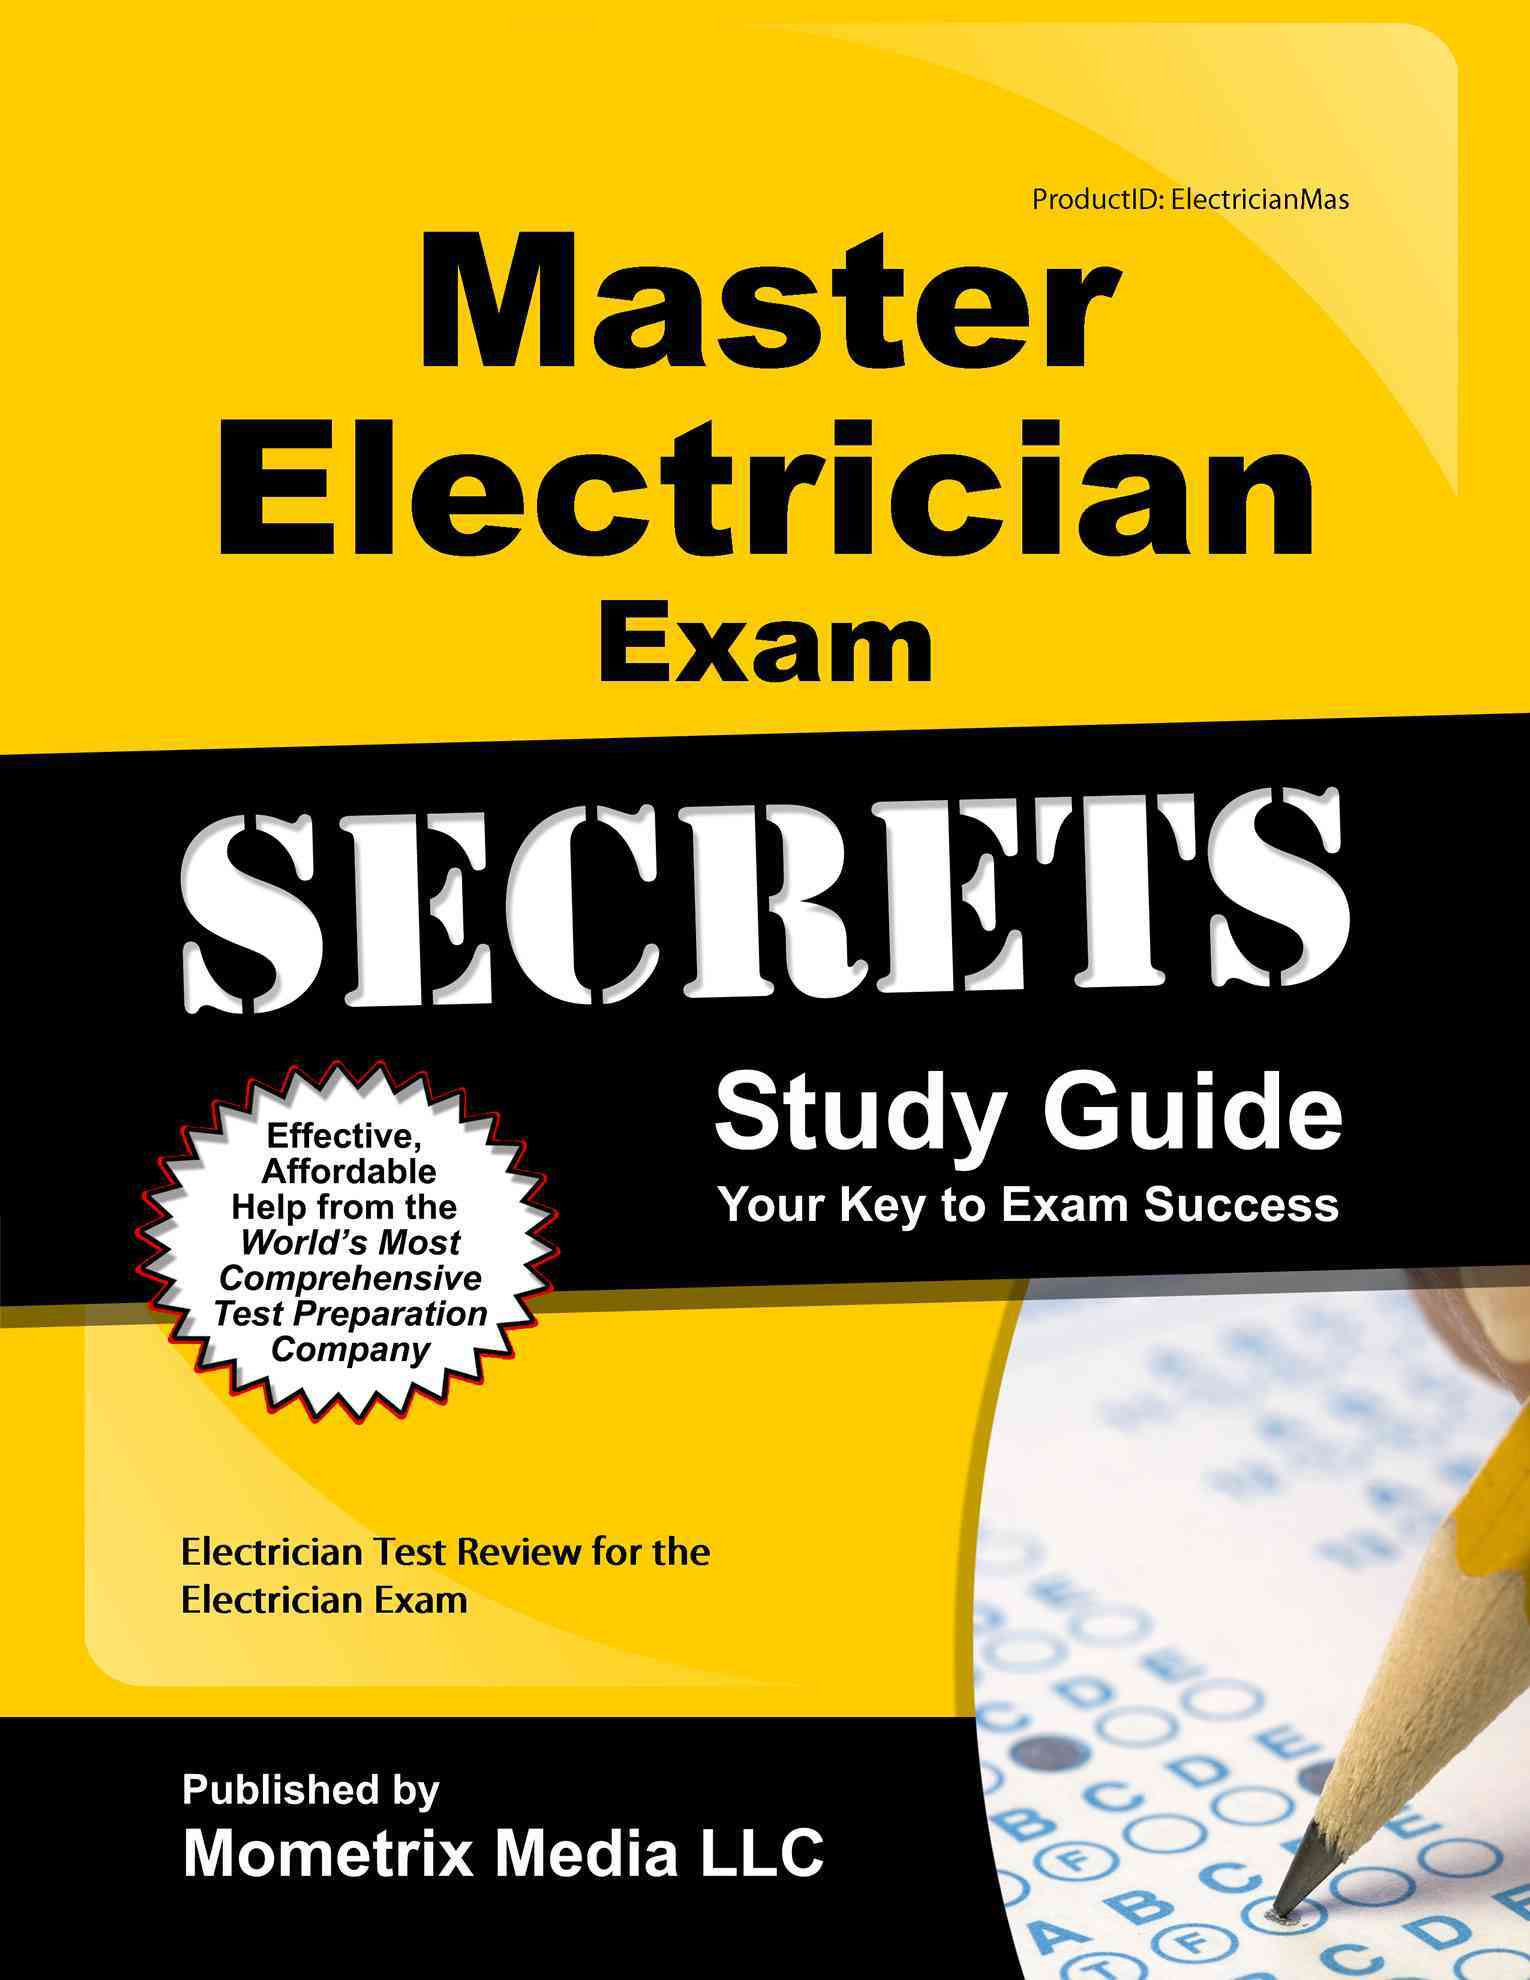 Master Electrician Exam Secrets Study Guide By Electrician Exam Secrets (EDT) [Study Guide Edition]